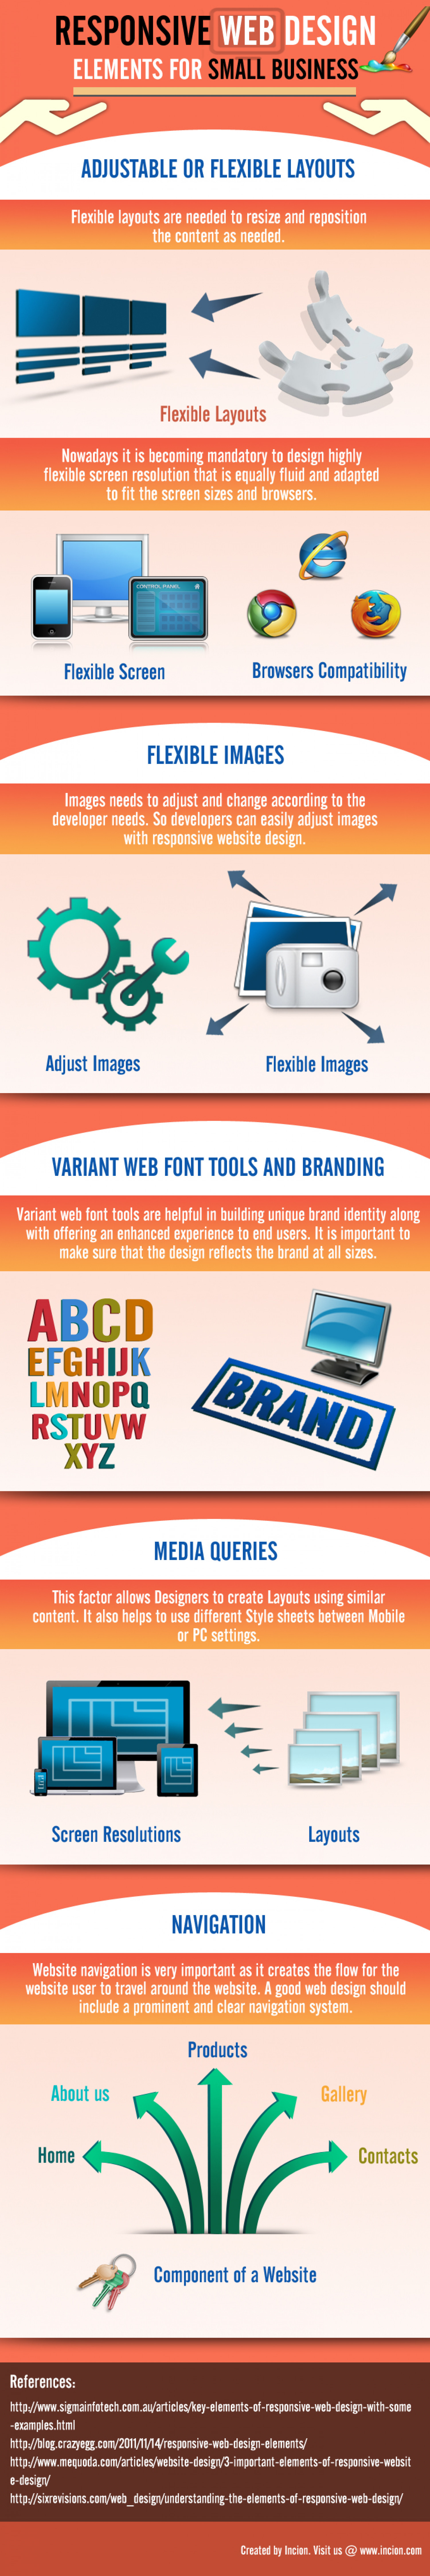 Responsive Web Design for Small Business Infographic